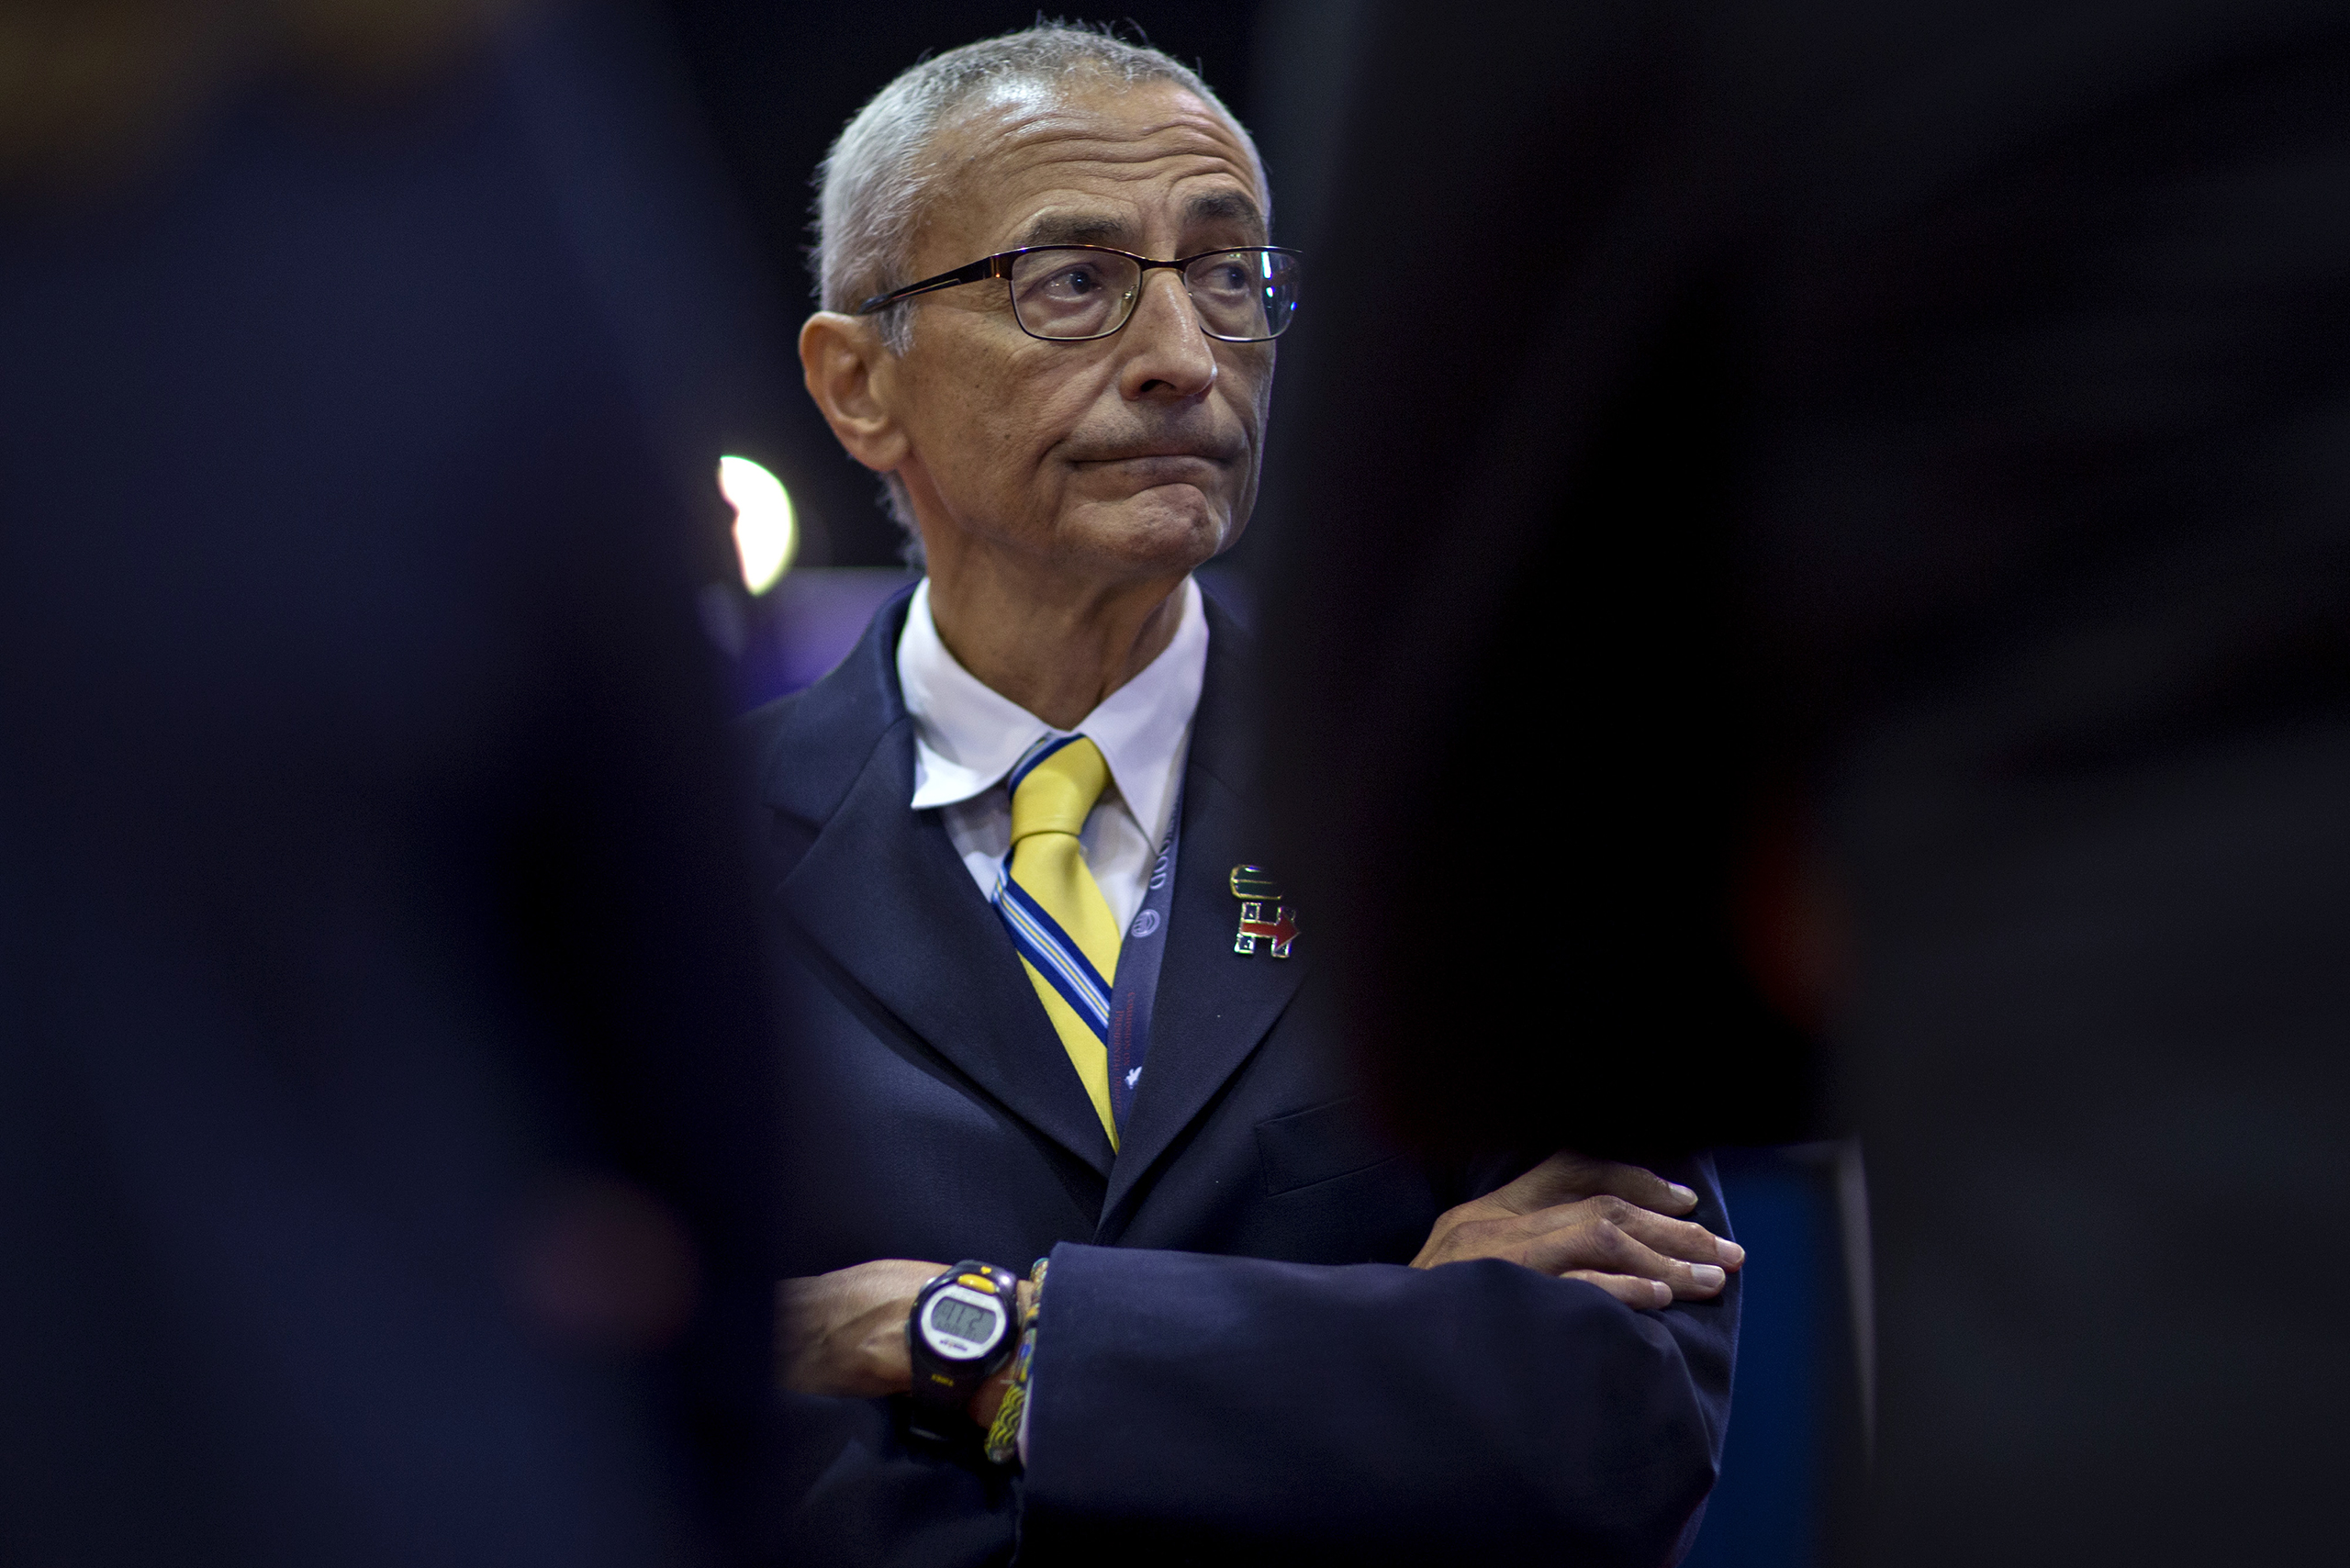 John Podesta, campaign chairman of the Democratic Nominee Hillary Clinton, waits to speak to members of the media in the spin room ahead of the vice presidential debate at Longwood University in Farmville, Va., on Oct. 4, 2016.